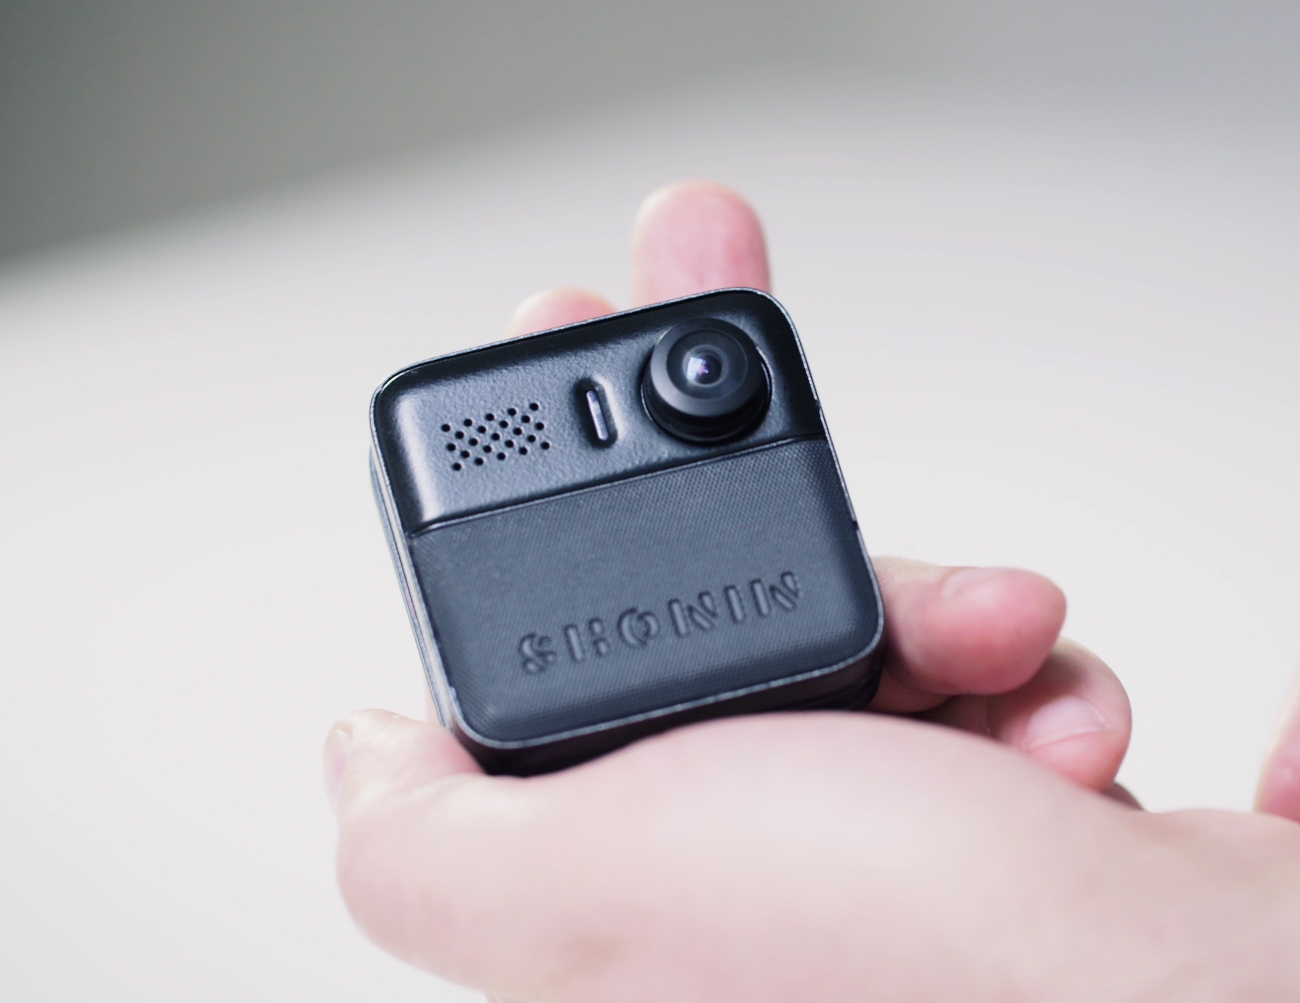 Livestream Your Perspective with the Shonin Streamcam